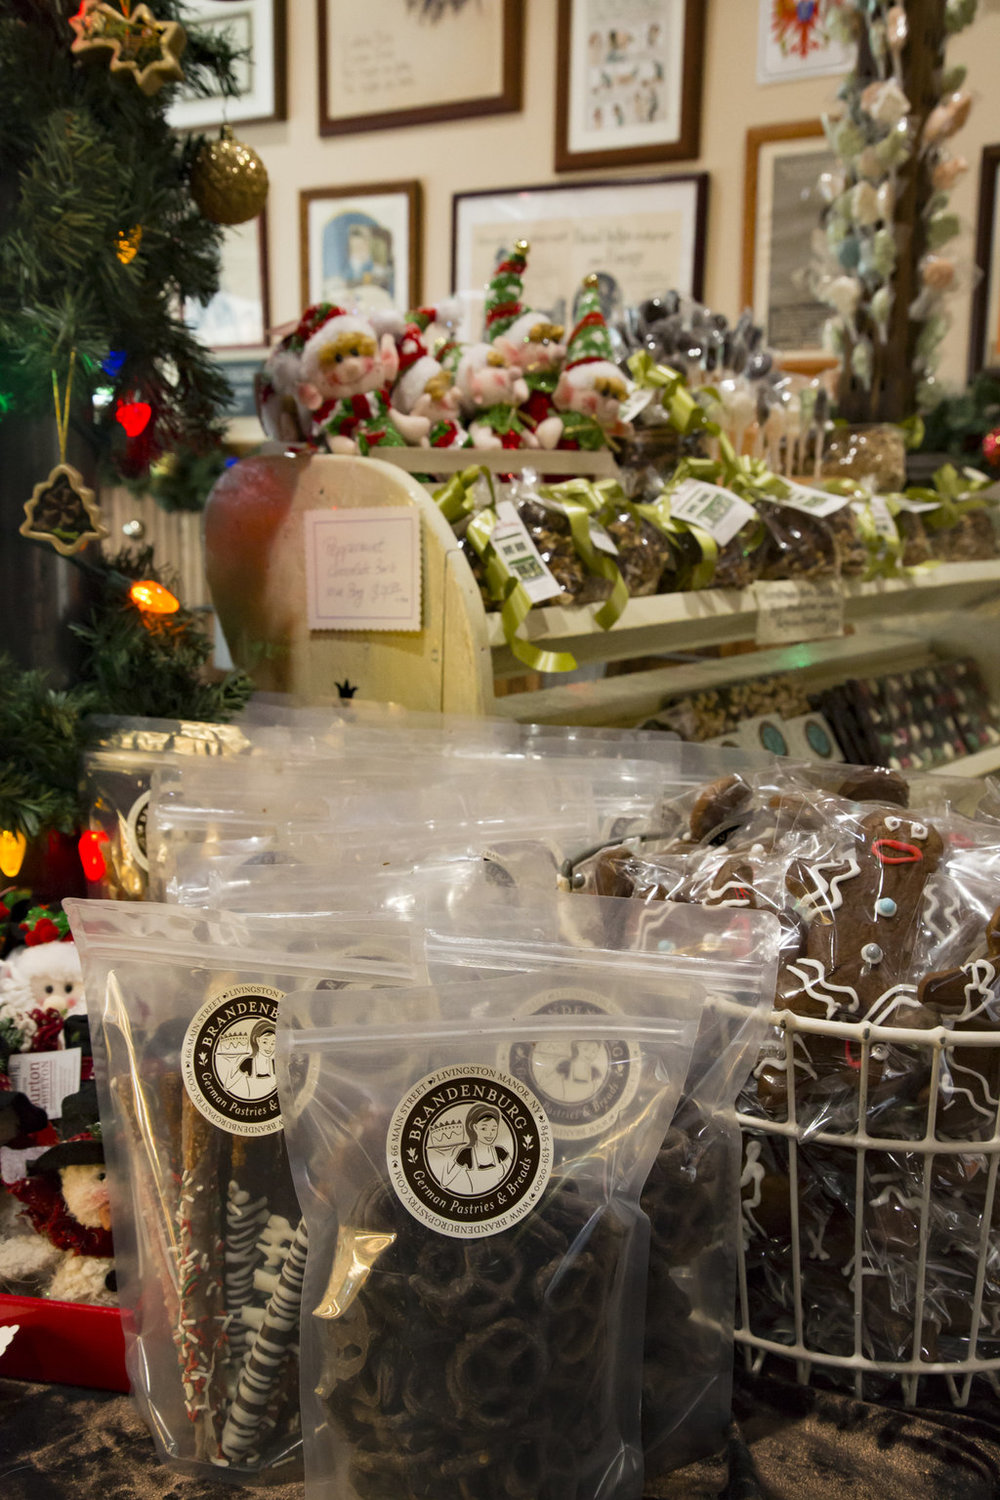 A full array of holiday goodies! Need gifts this holiday season?